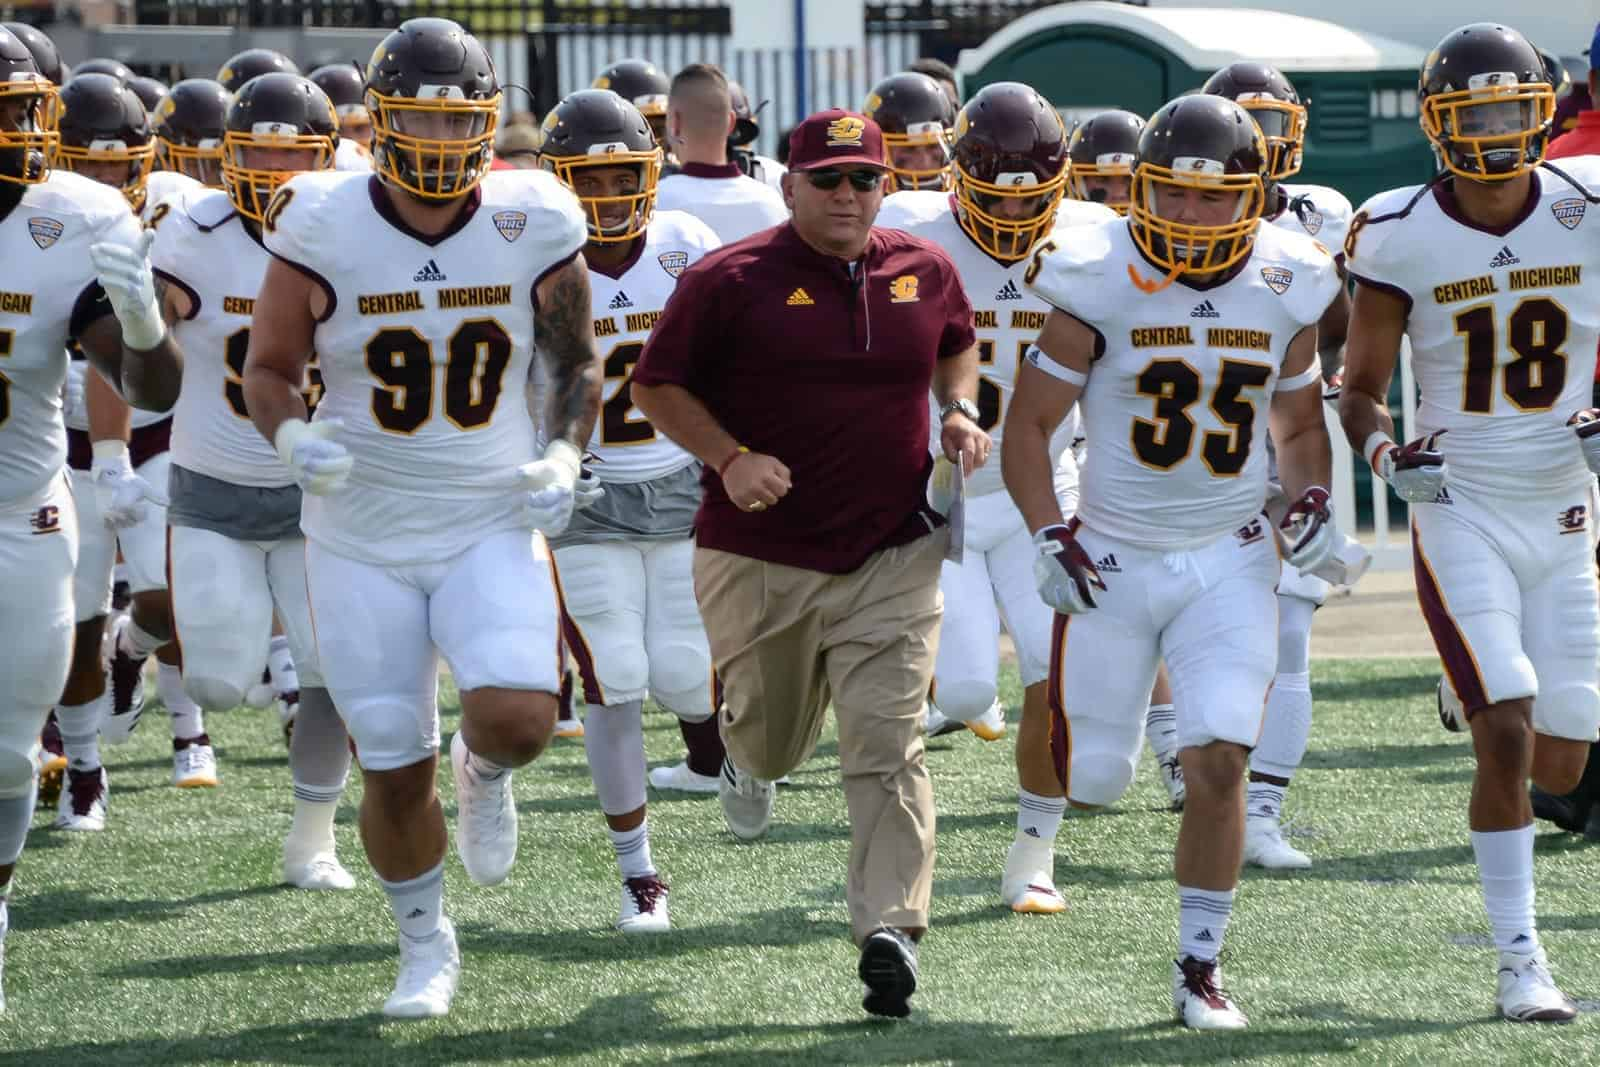 College Football Schedule: CMU